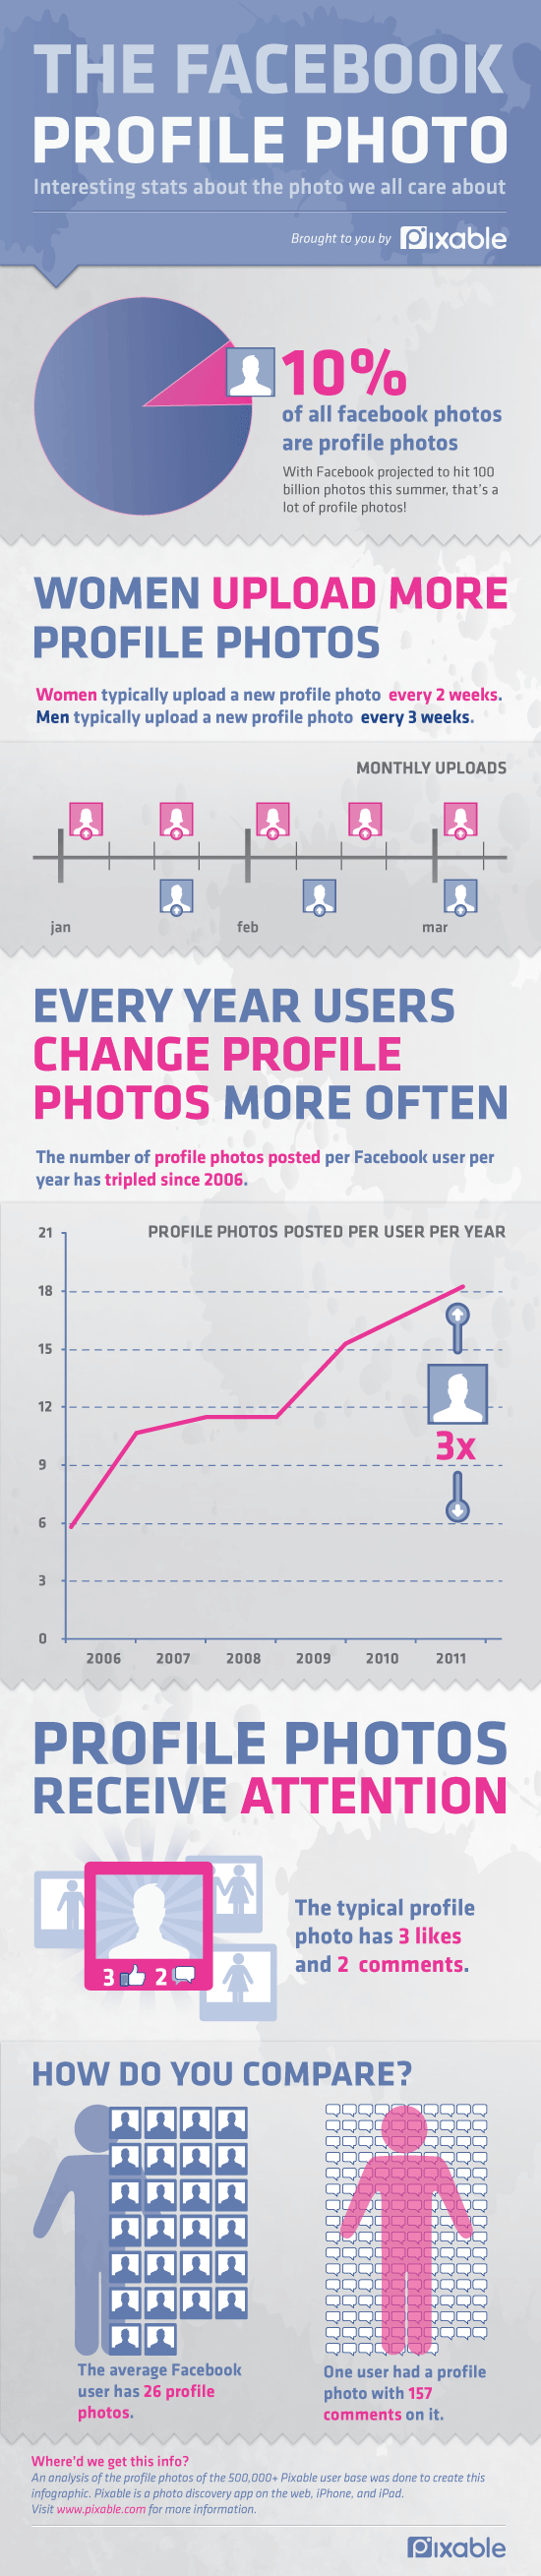 Pixable Facebook infographic